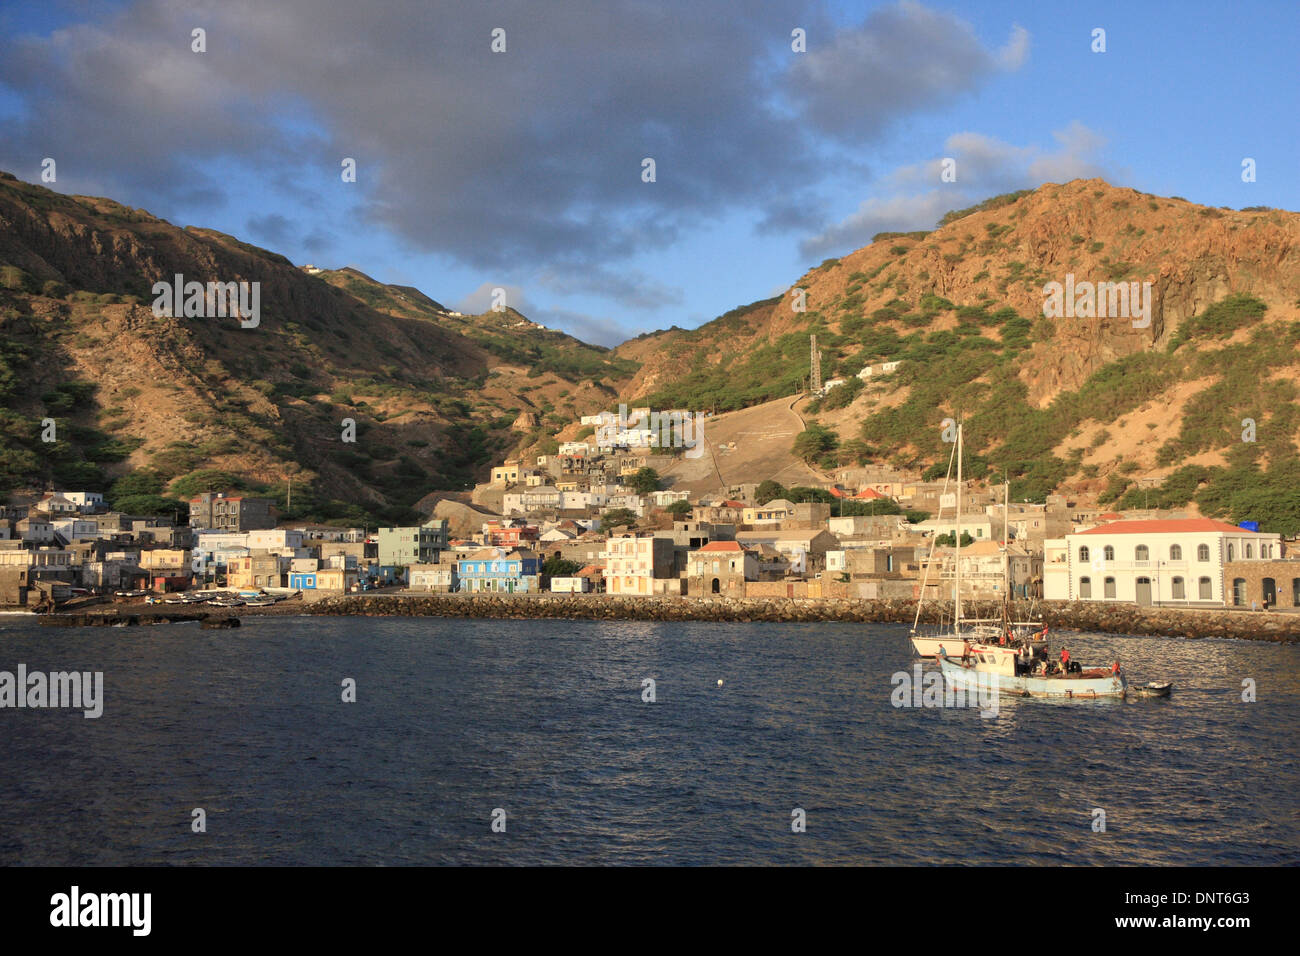 The port village of Furna on the island of Brava, Cape Verde where the ferry from the island of Fogo docks. Stock Photo